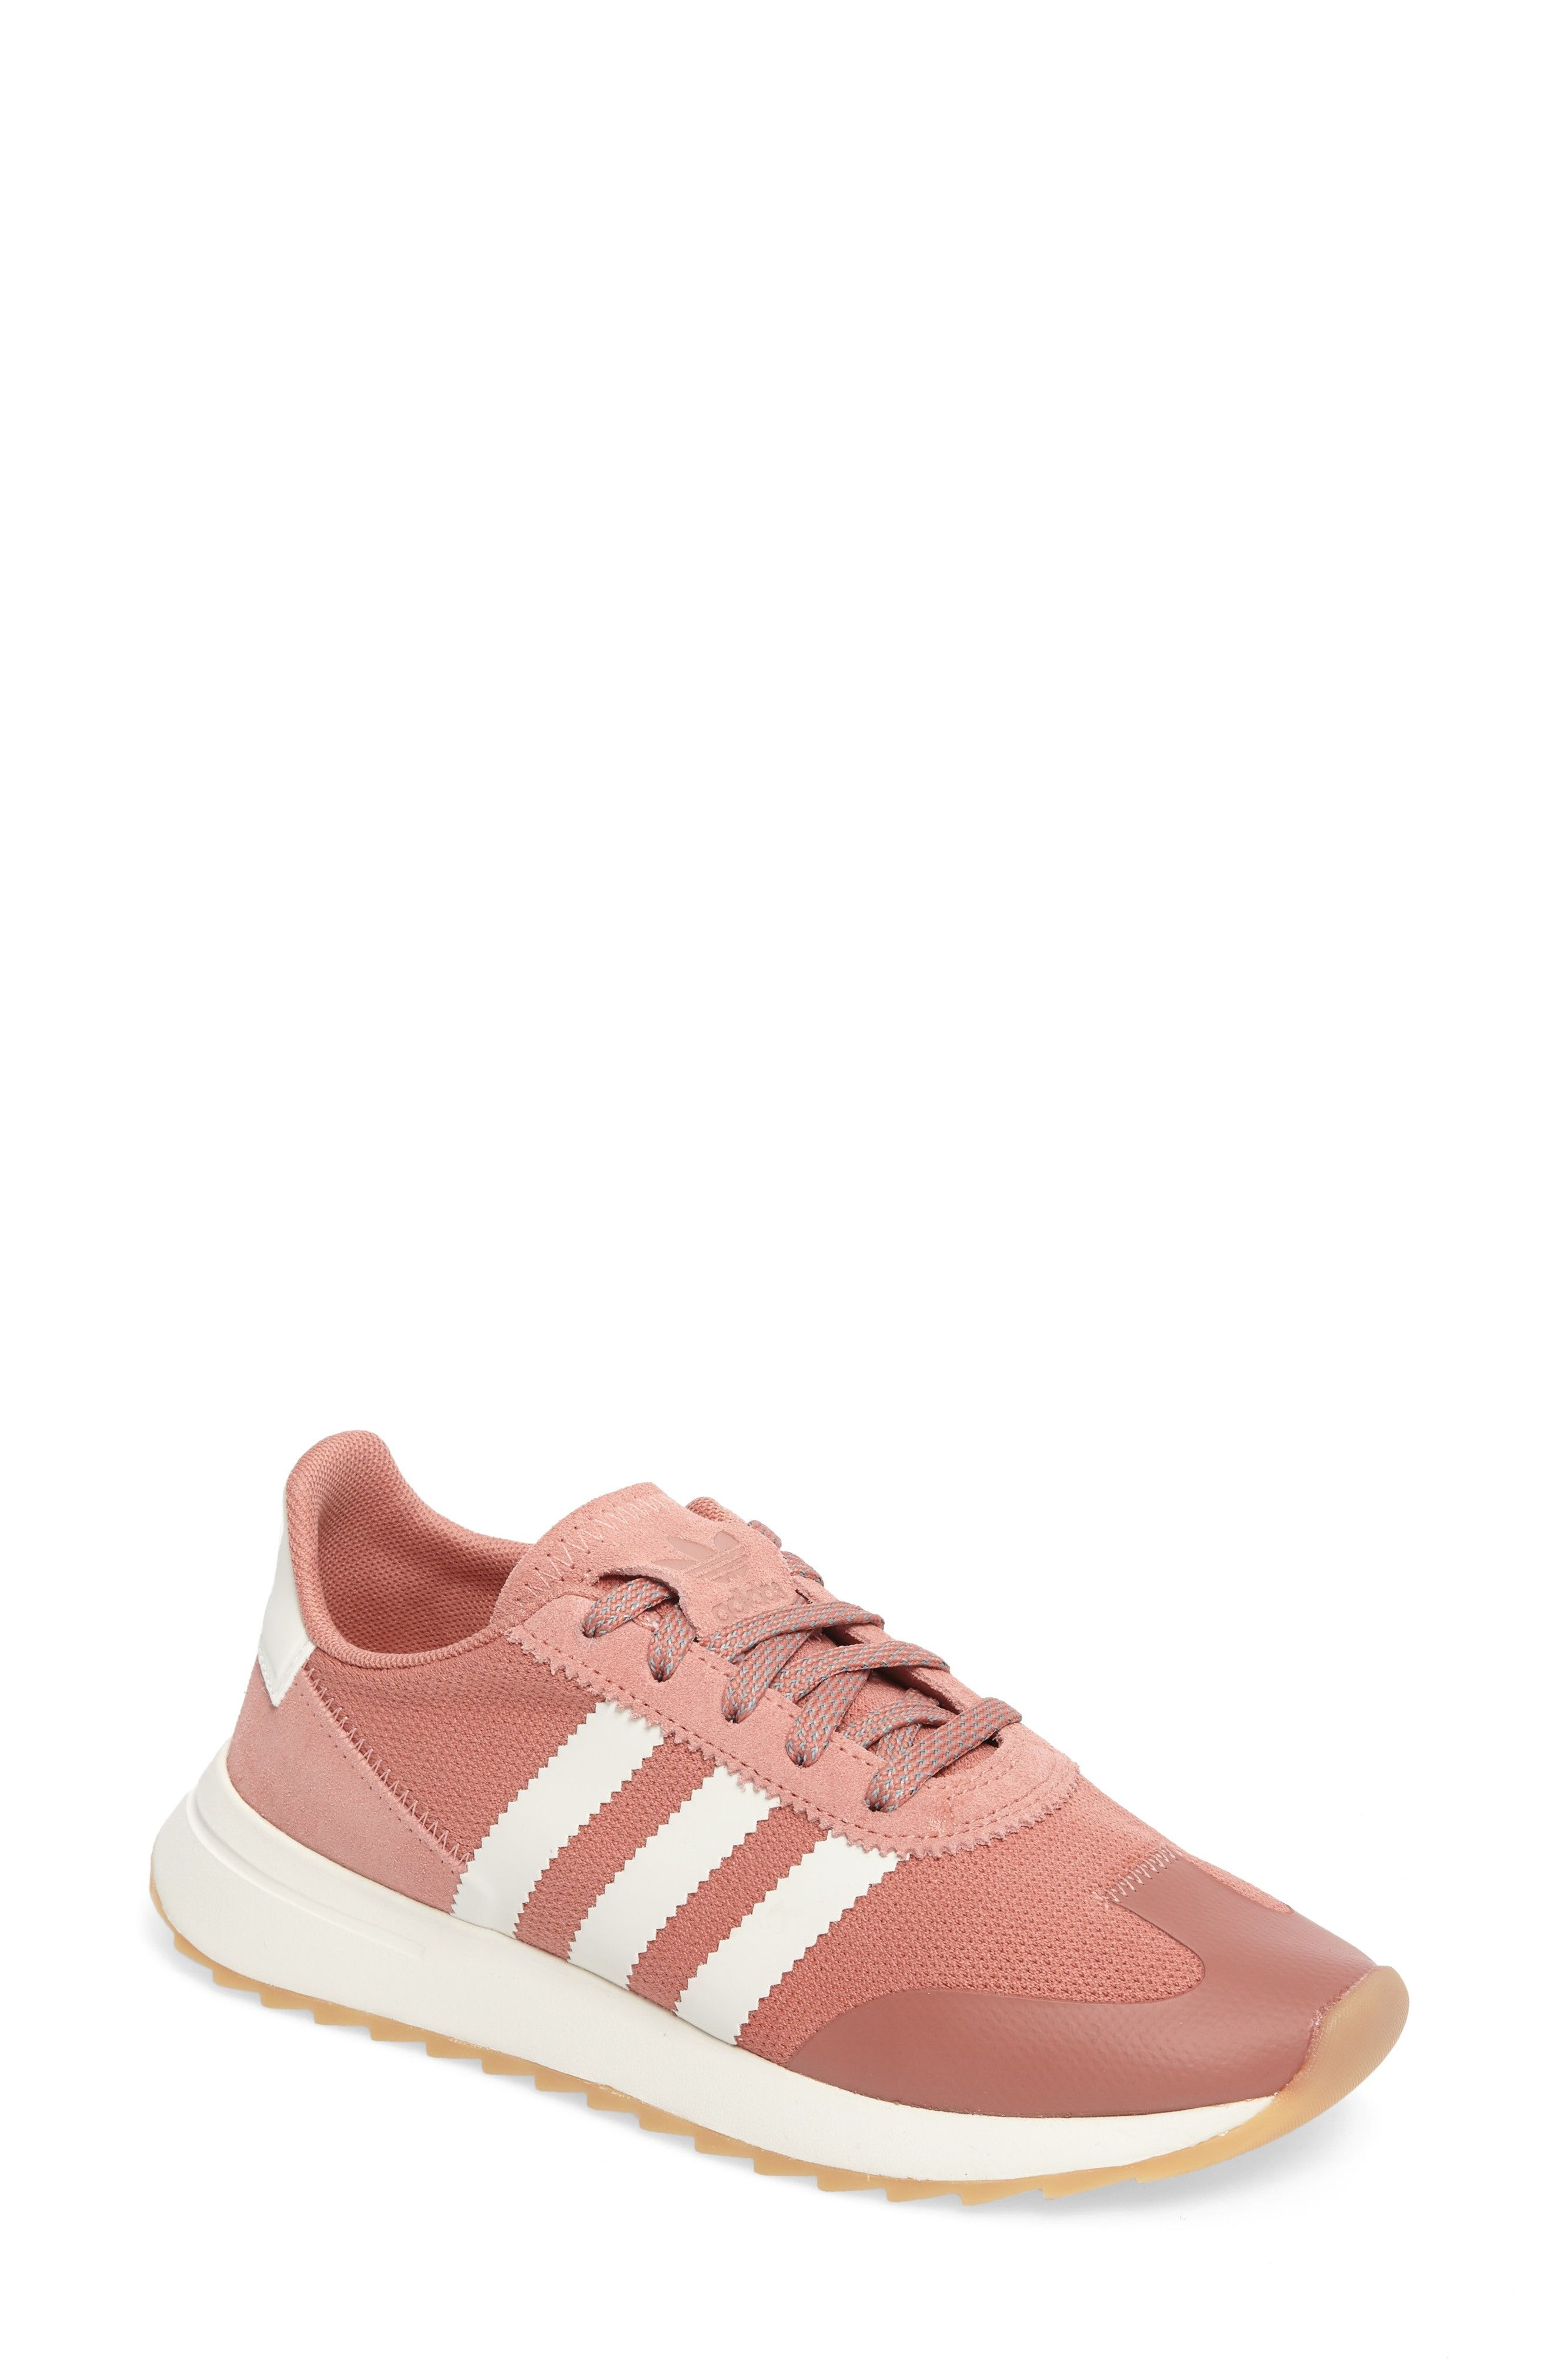 sports shoes 3b4d9 fe7b8 Women s New Arrivals  Clothing, Shoes   Beauty. adidas pink flashback  running sneaker